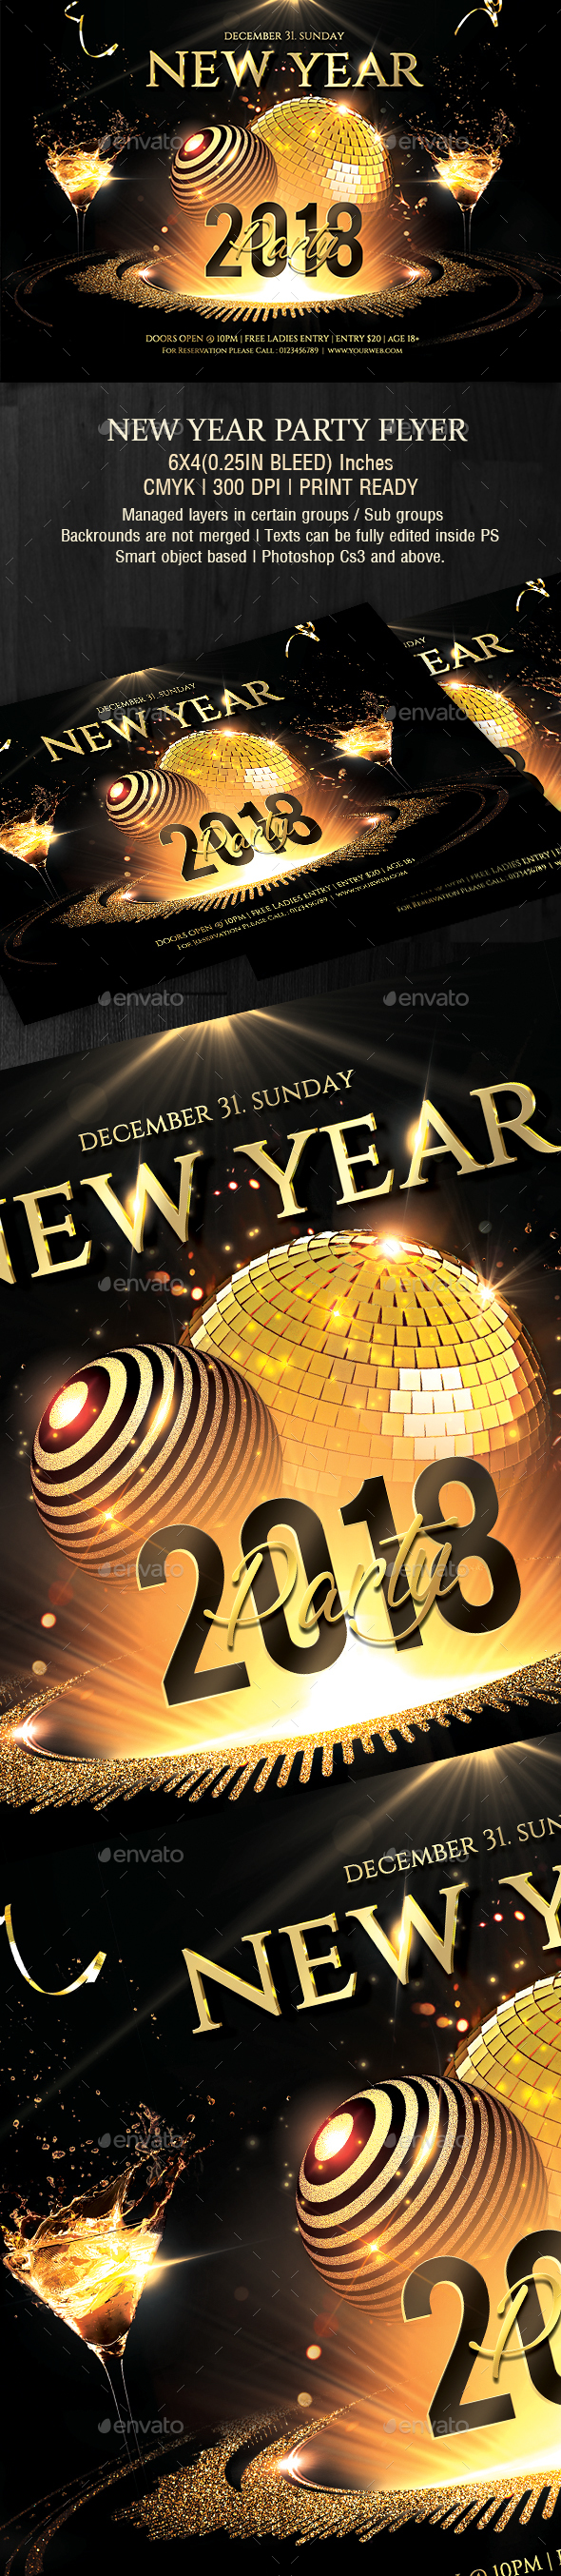 GraphicRiver New Year Party Flyer 21157415